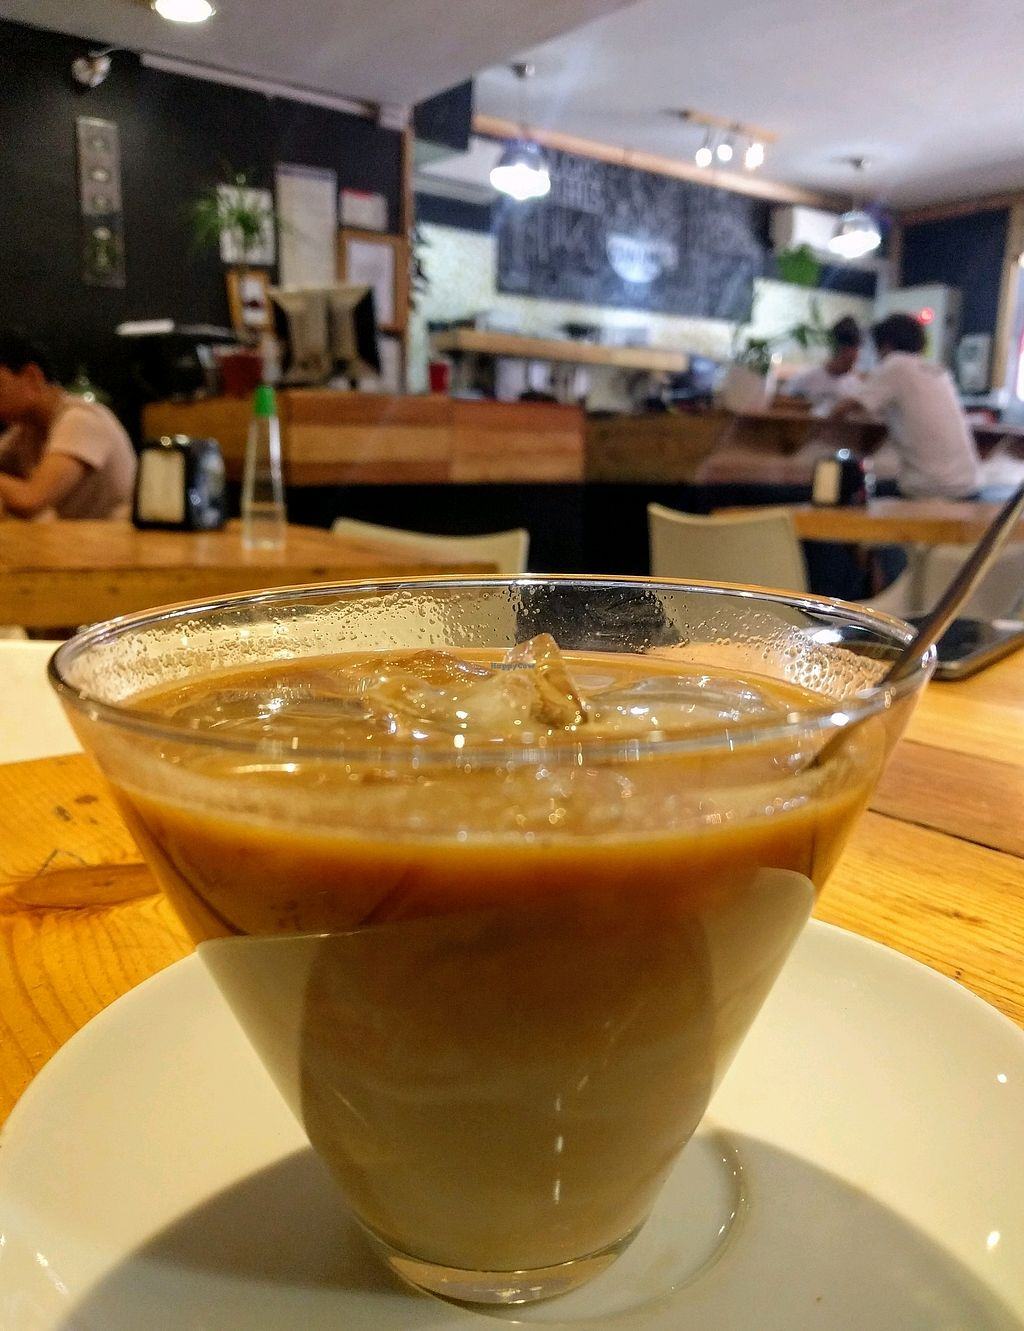 """Photo of Canamo Coffee  by <a href=""""/members/profile/The%20Hungry%20Vegan"""">The Hungry Vegan</a> <br/>Soy Latte <br/> January 7, 2018  - <a href='/contact/abuse/image/104397/344107'>Report</a>"""